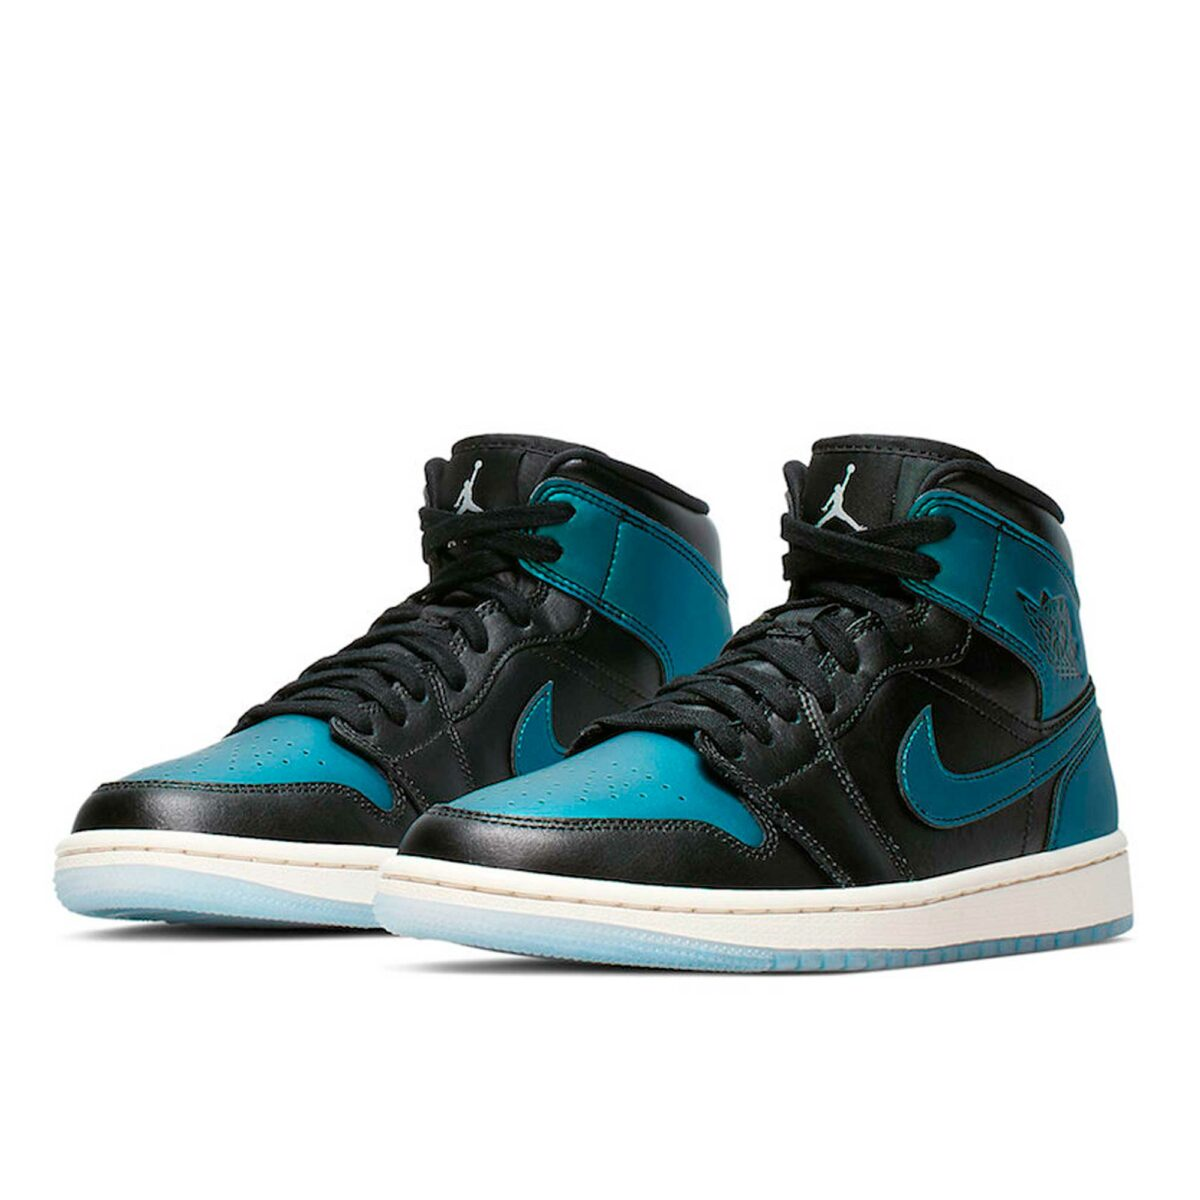 nike air Jordan 1 mid blue metallic 907958_015 купить